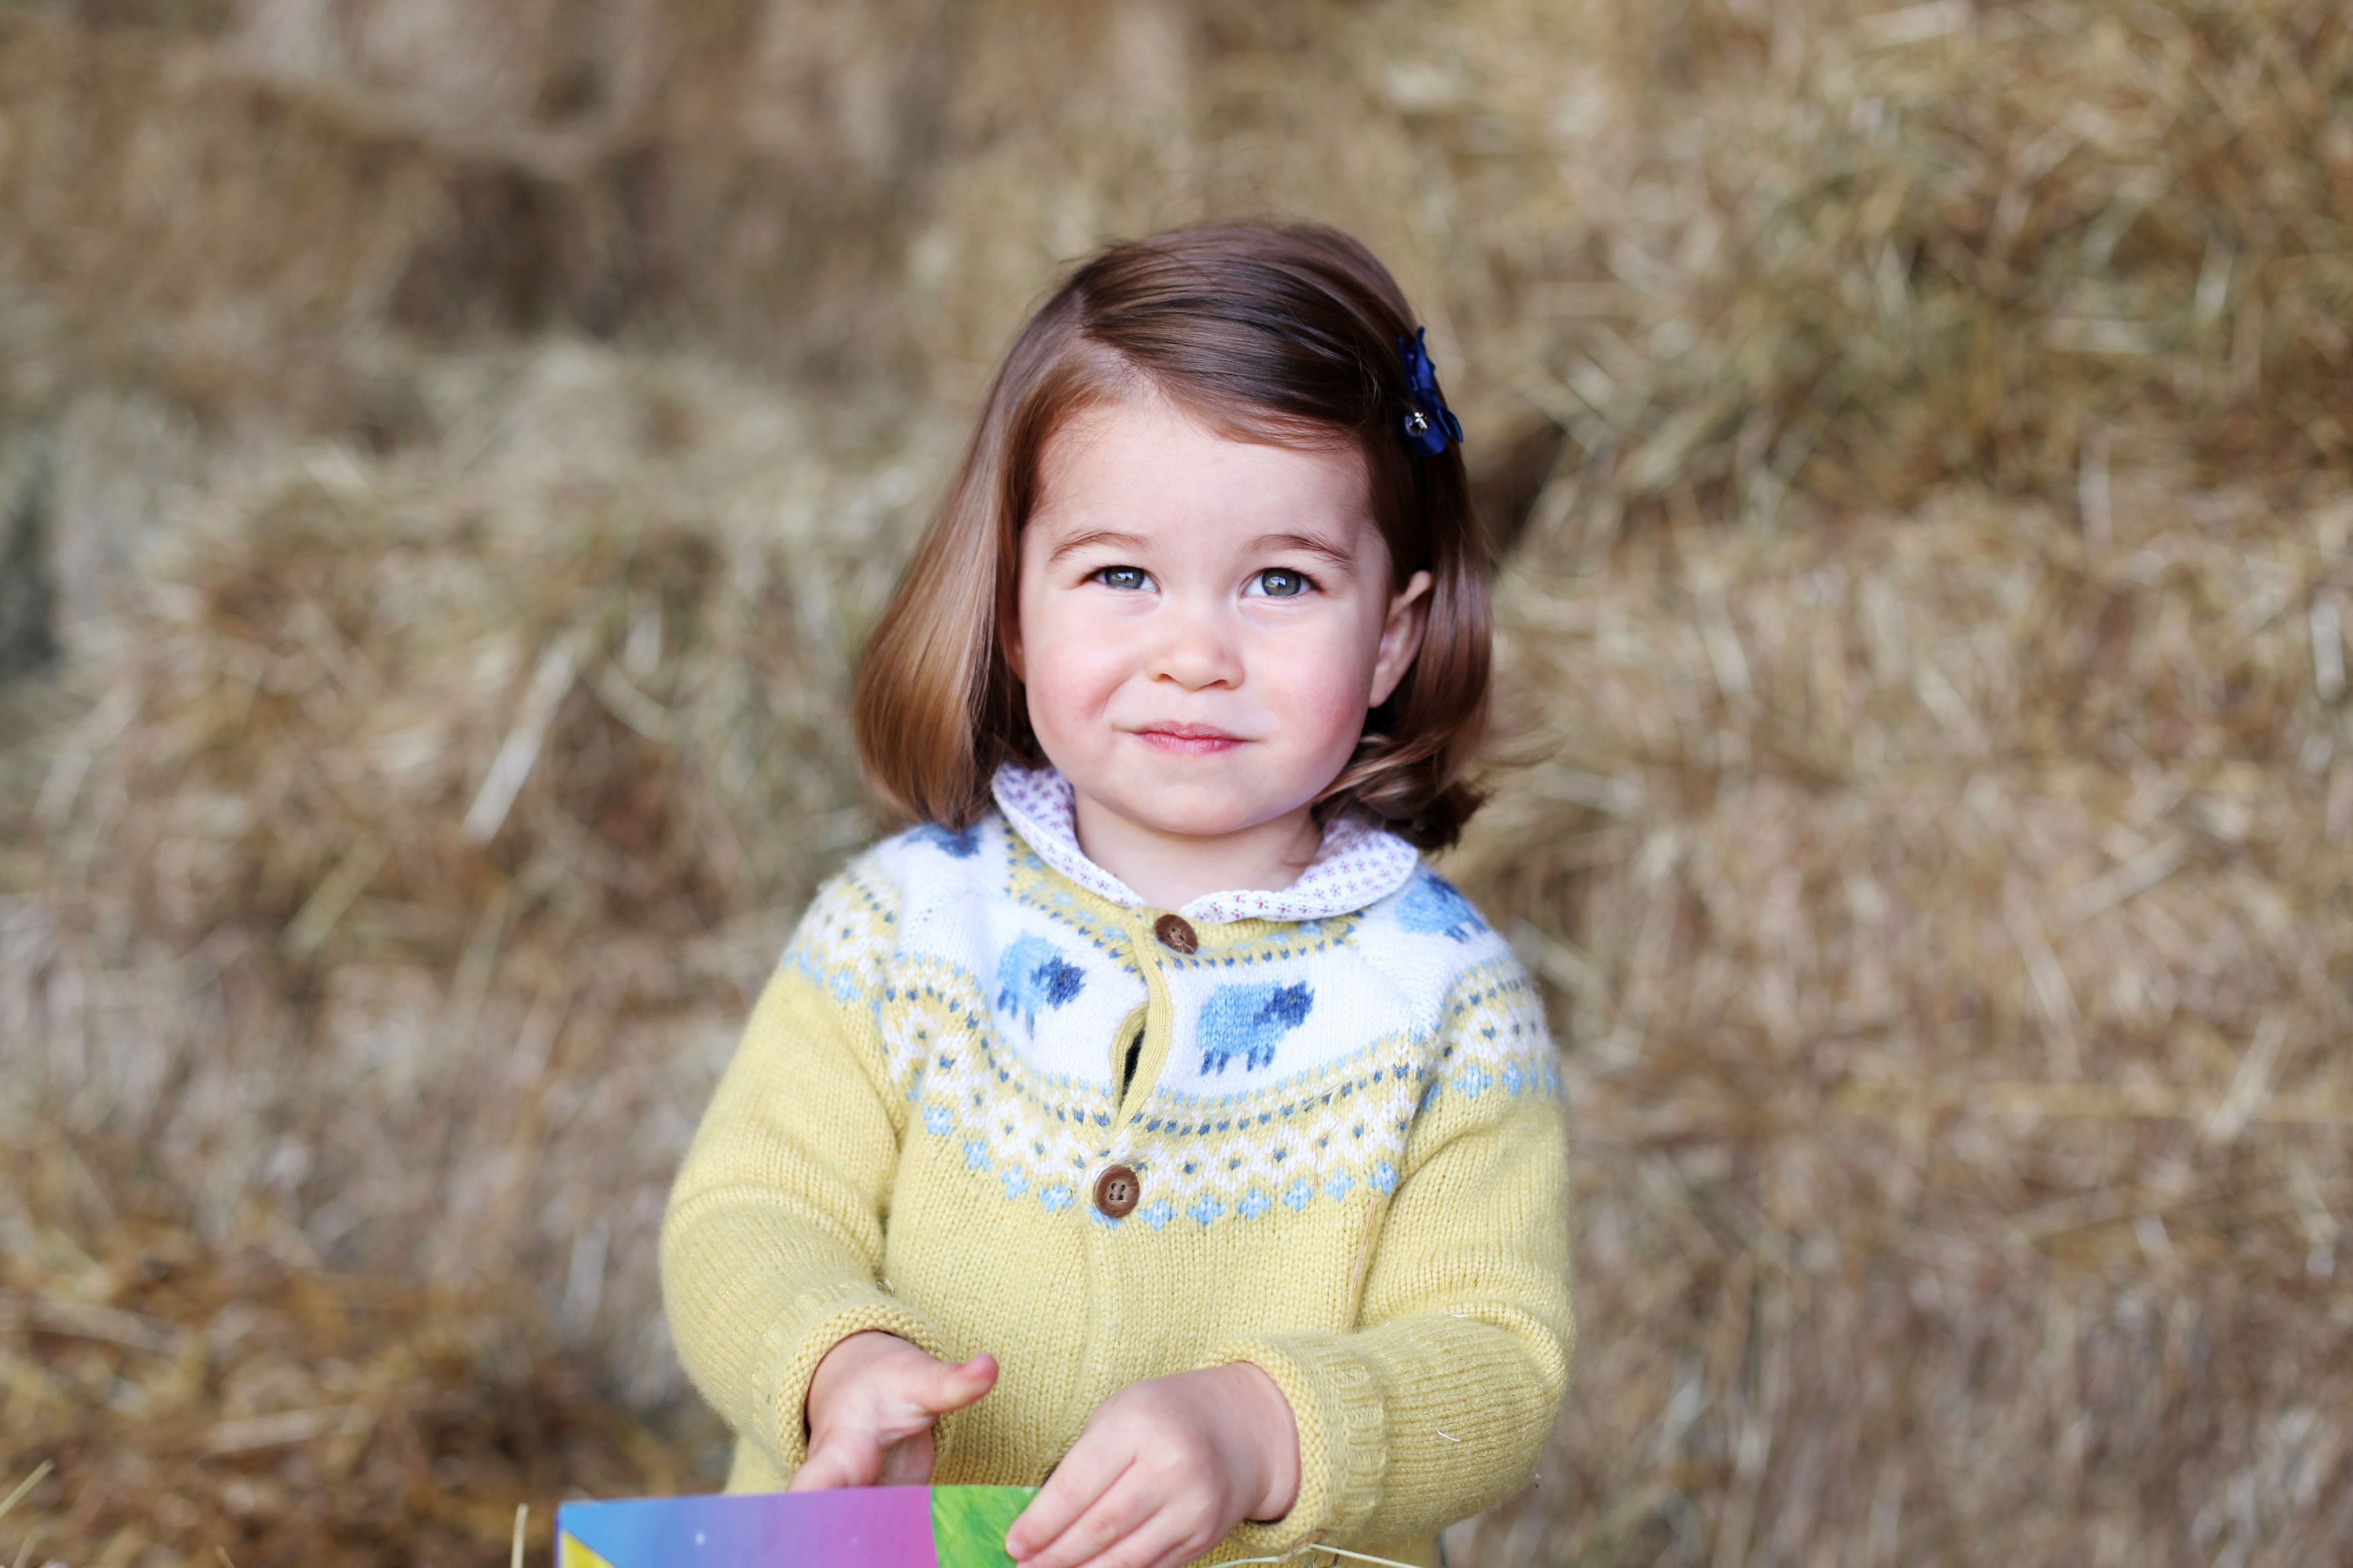 Adorable New Photo Of Princess Charlotte Taken By Her Mum Ahead Of Her Second